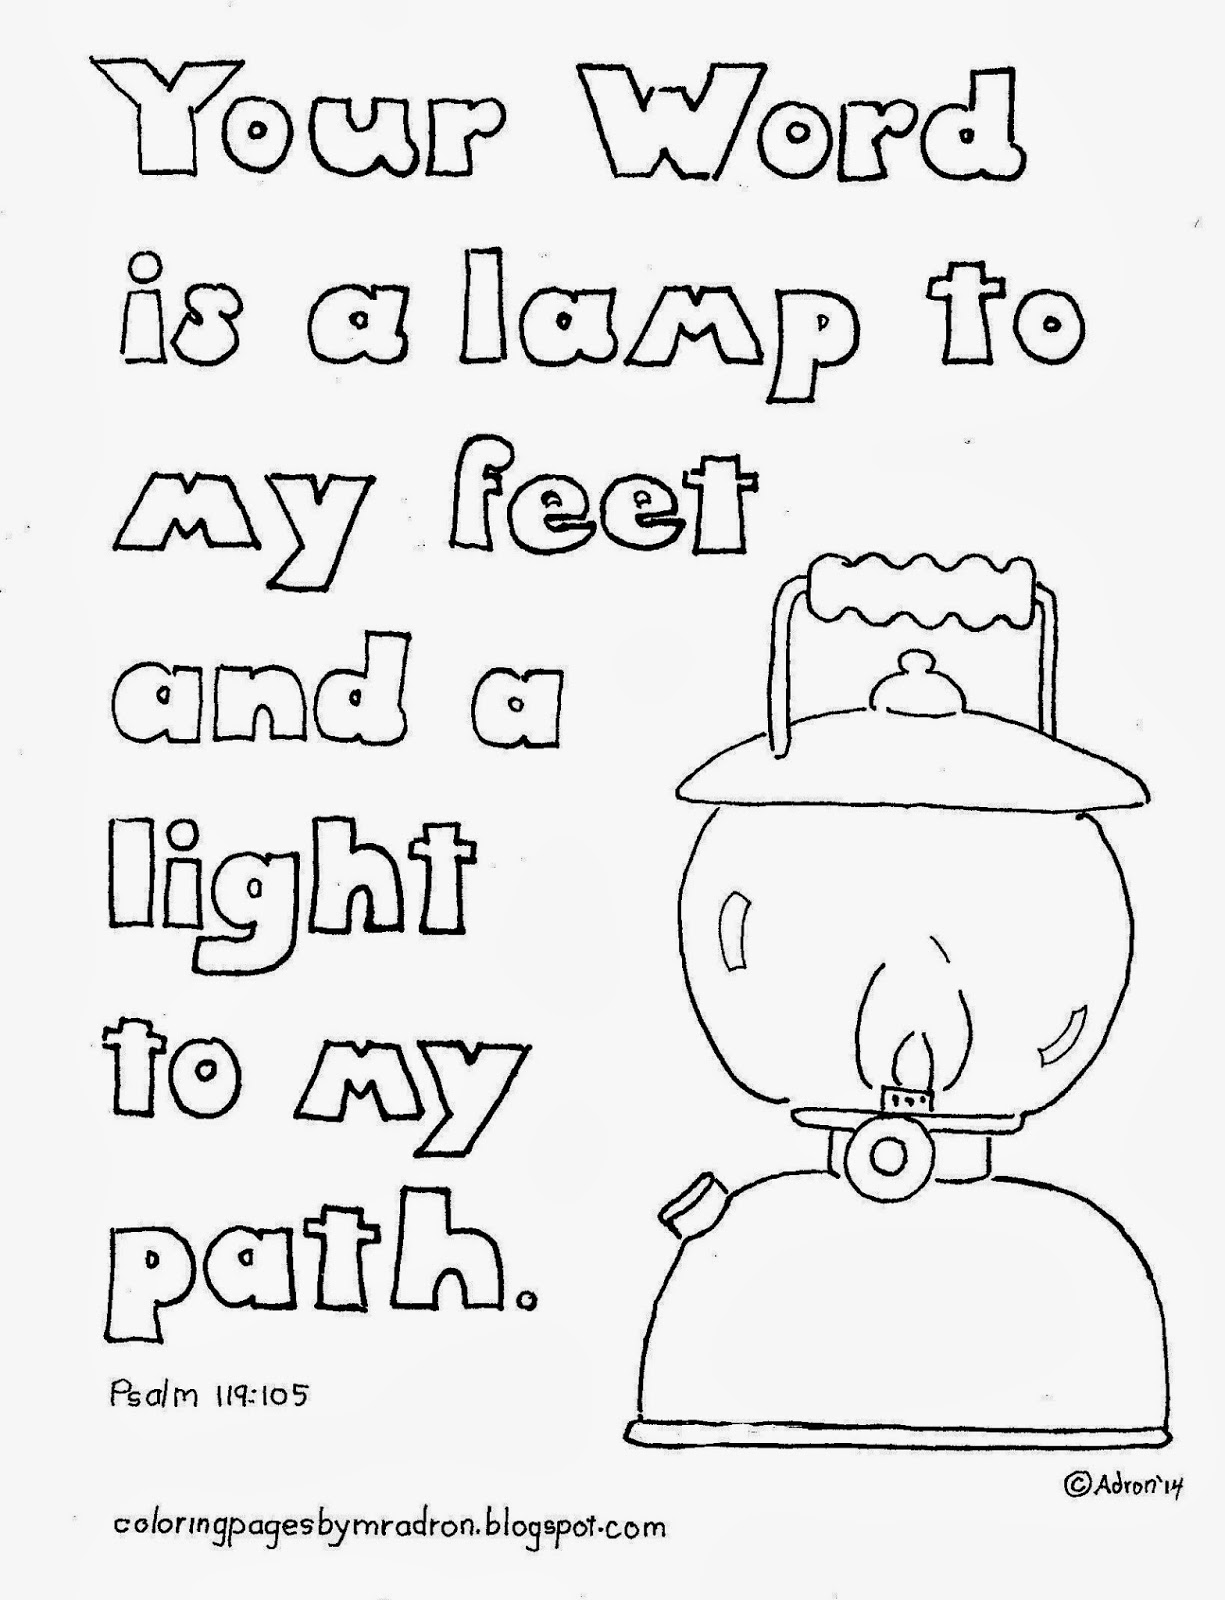 coloring pages for psalm 119 - photo#2